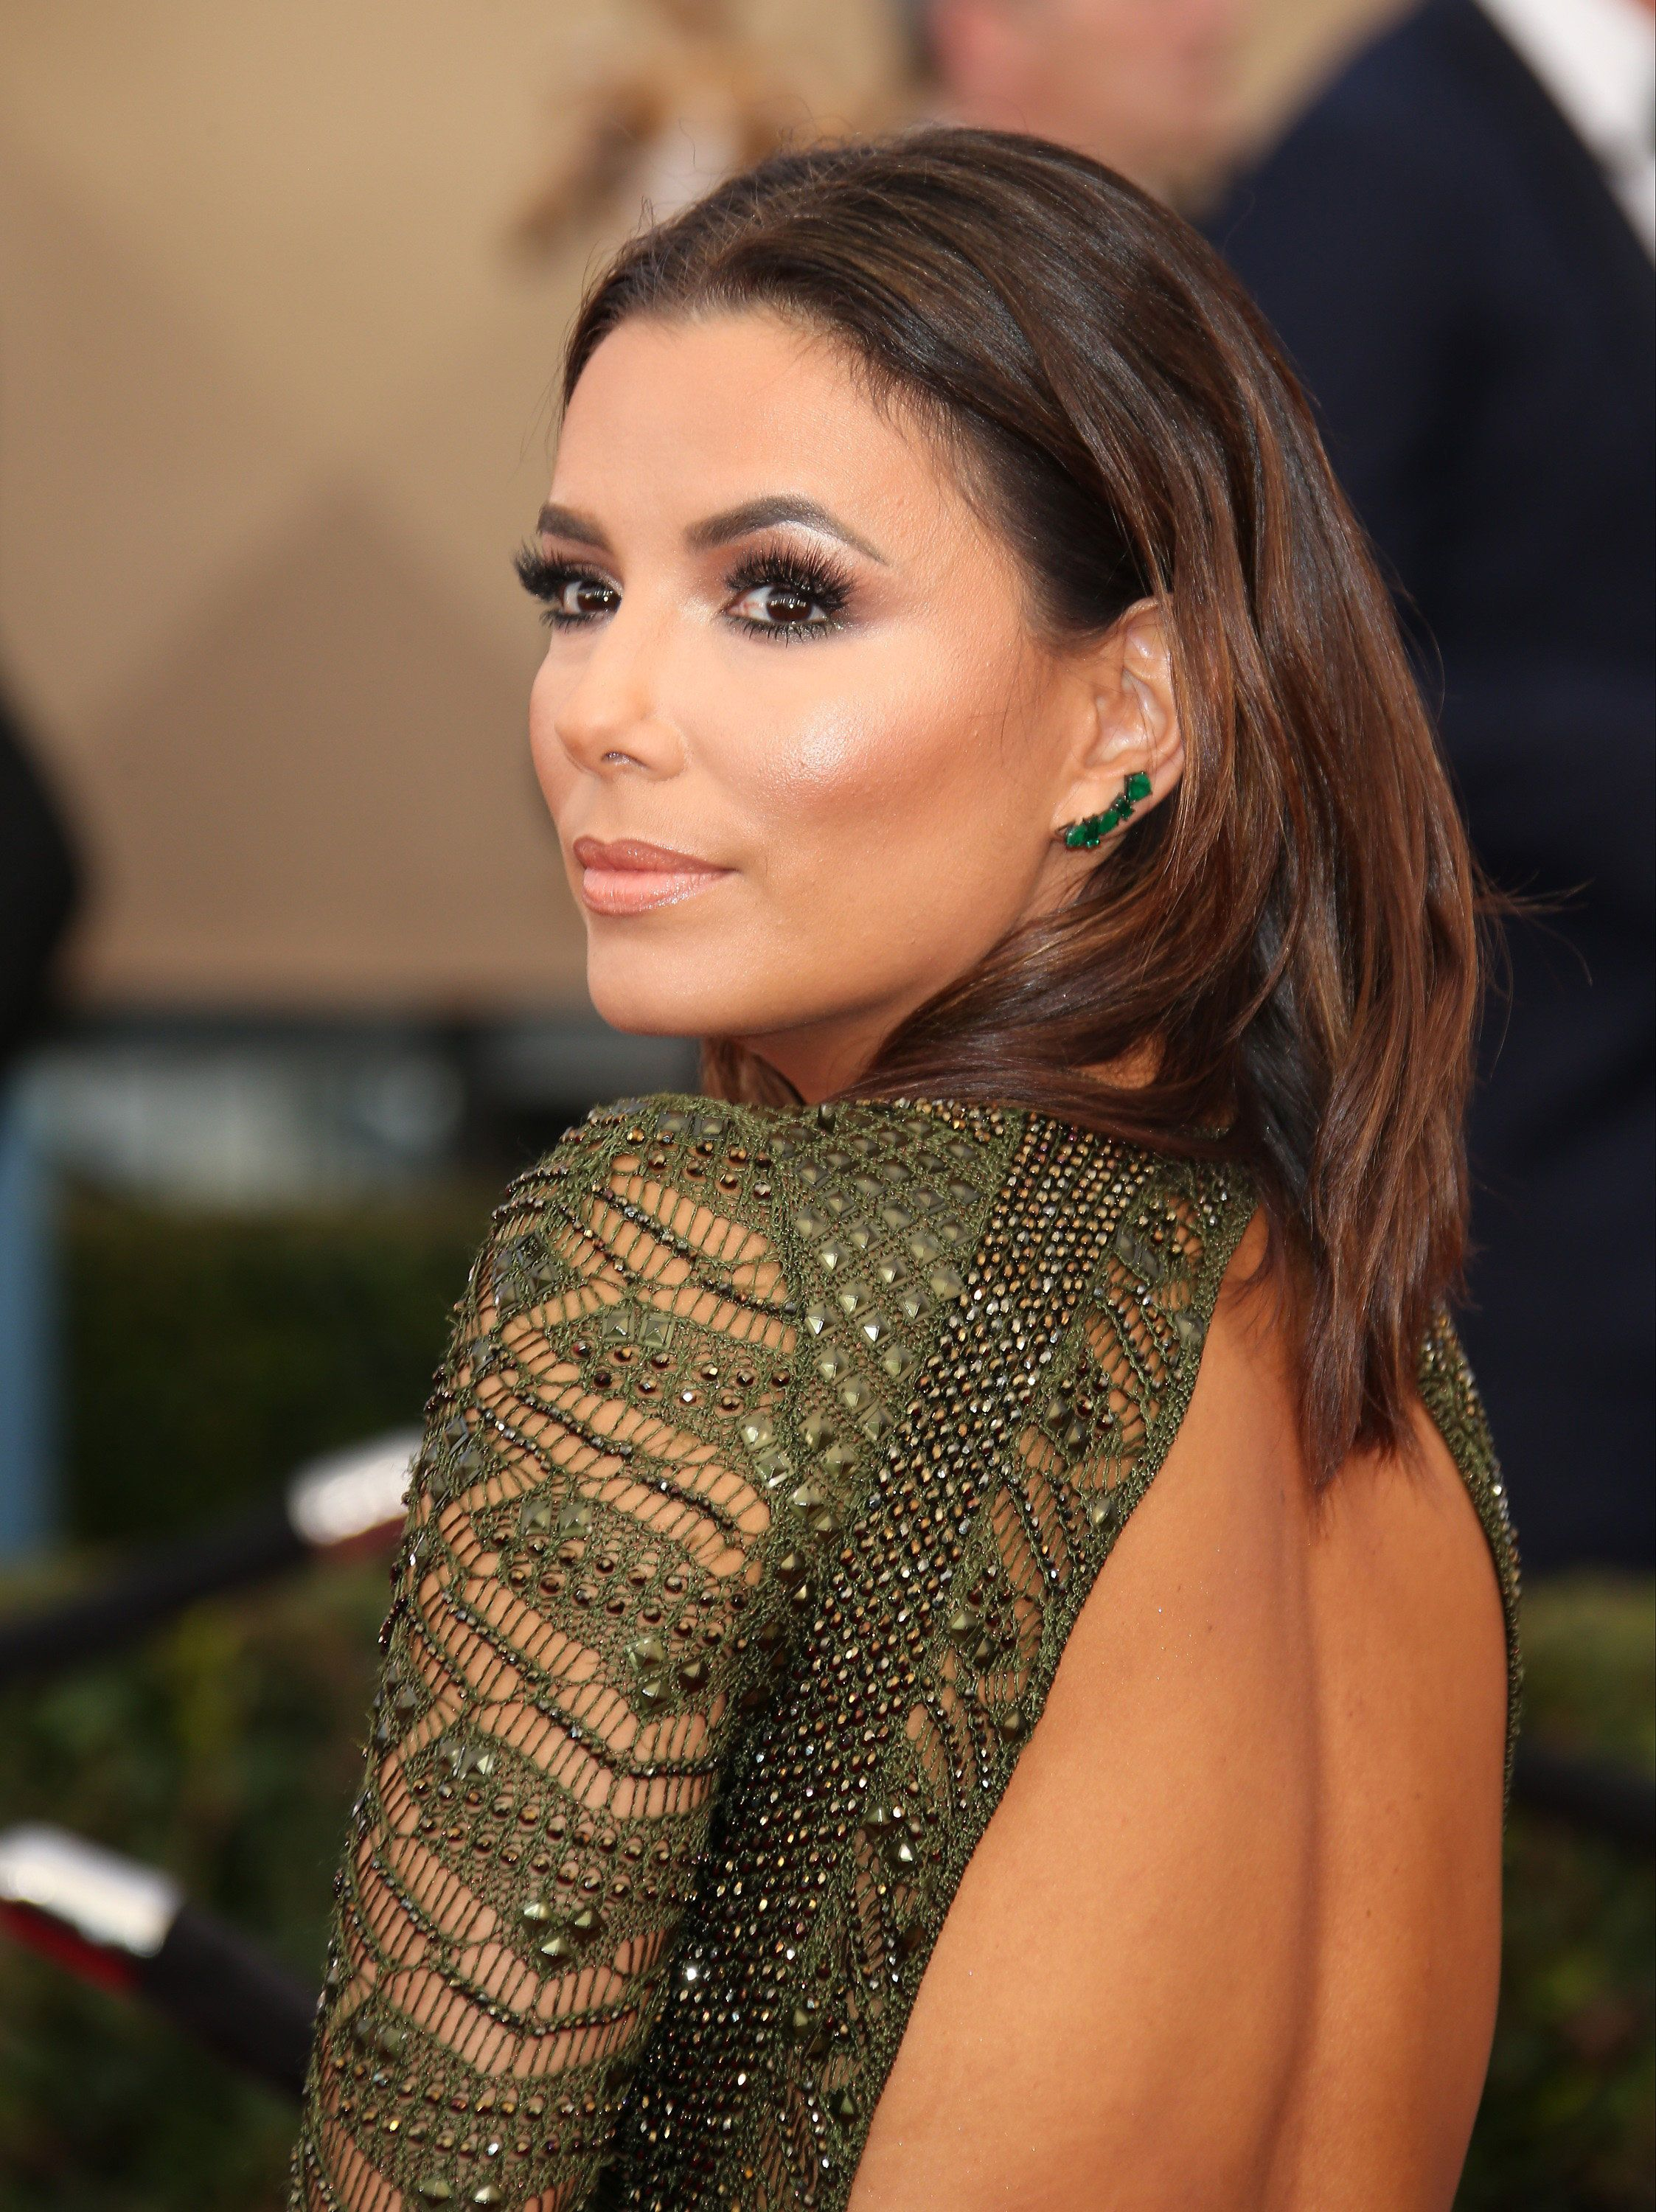 LOS ANGELES, CA - JANUARY 30: Actress Eva Longoria attends the 22nd Annual Screen Actors Guild Awards at The Shrine Auditorium on January 30, 2016 in Los Angeles, California. (Photo by Dan MacMedan/WireImage)